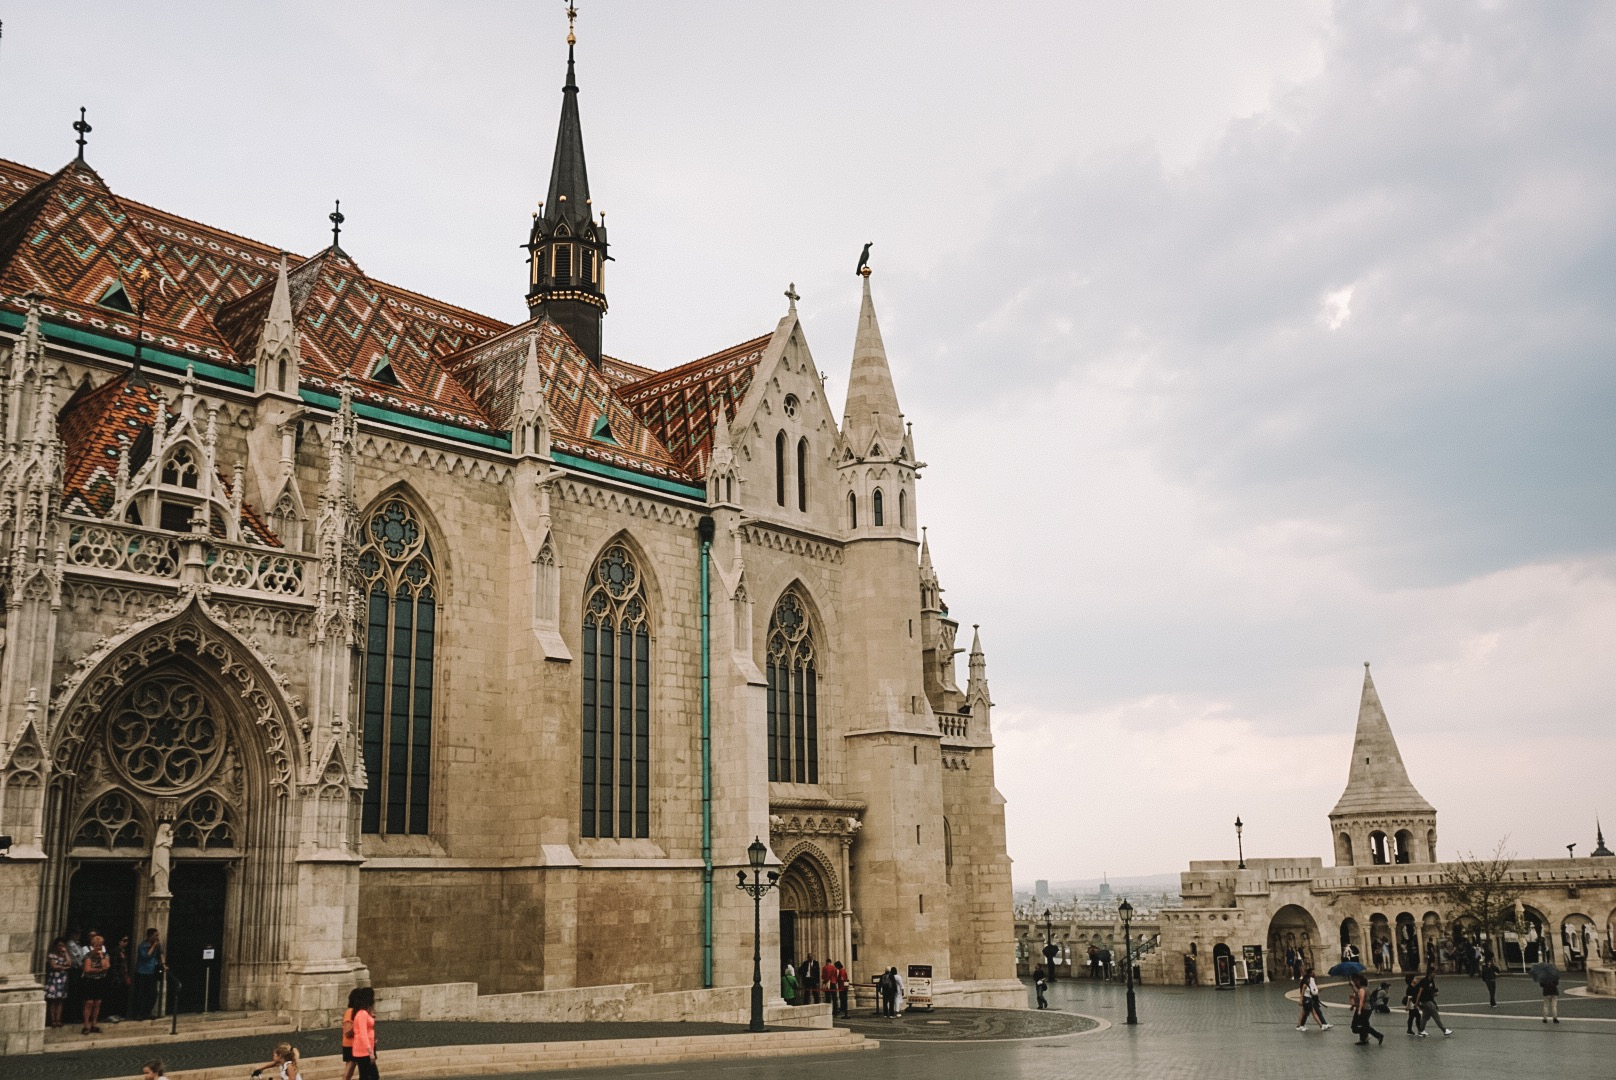 Matthias Church  at the heart of the  Buda's Castle District ; built in the second half of the 14th century.